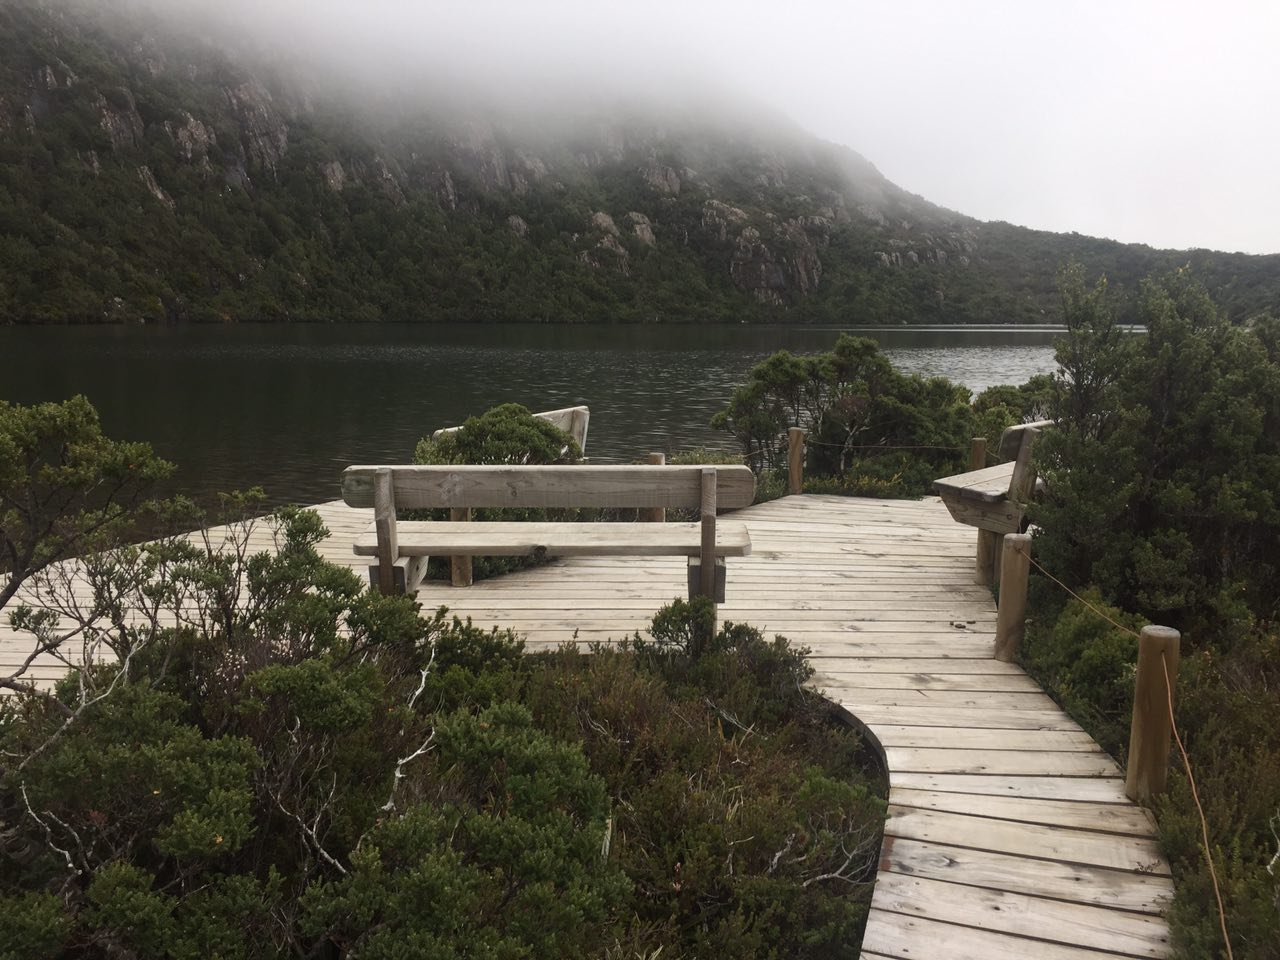 Photo of La conservazione dell'ambiente e l'eco-turismo in Tasmania: un caso esemplare